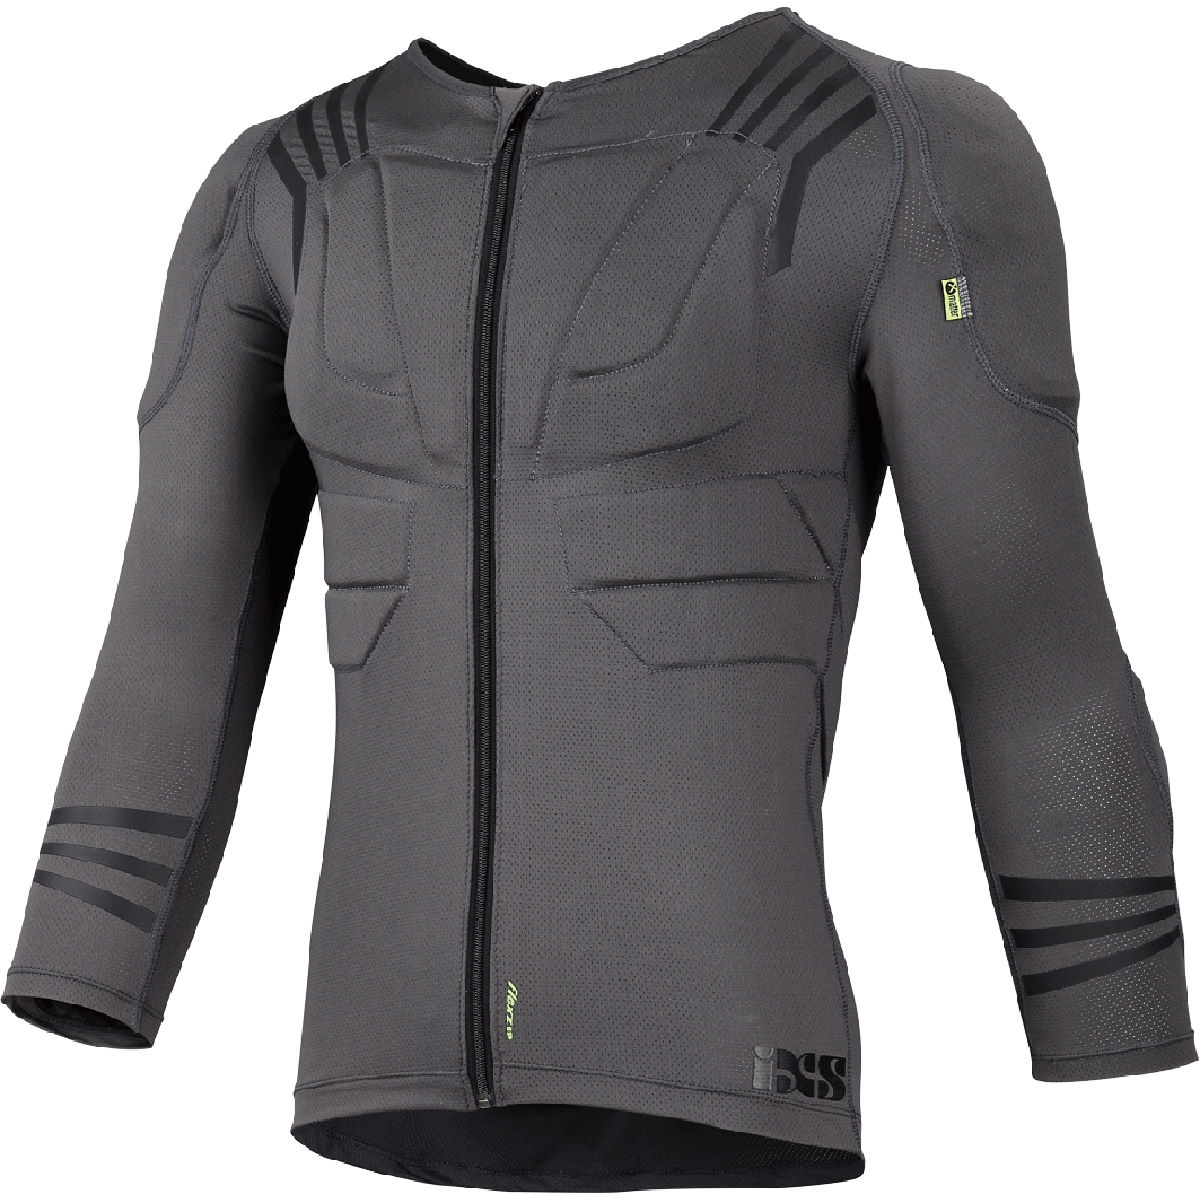 IXS Trigger Upper Body protection   Body Armour